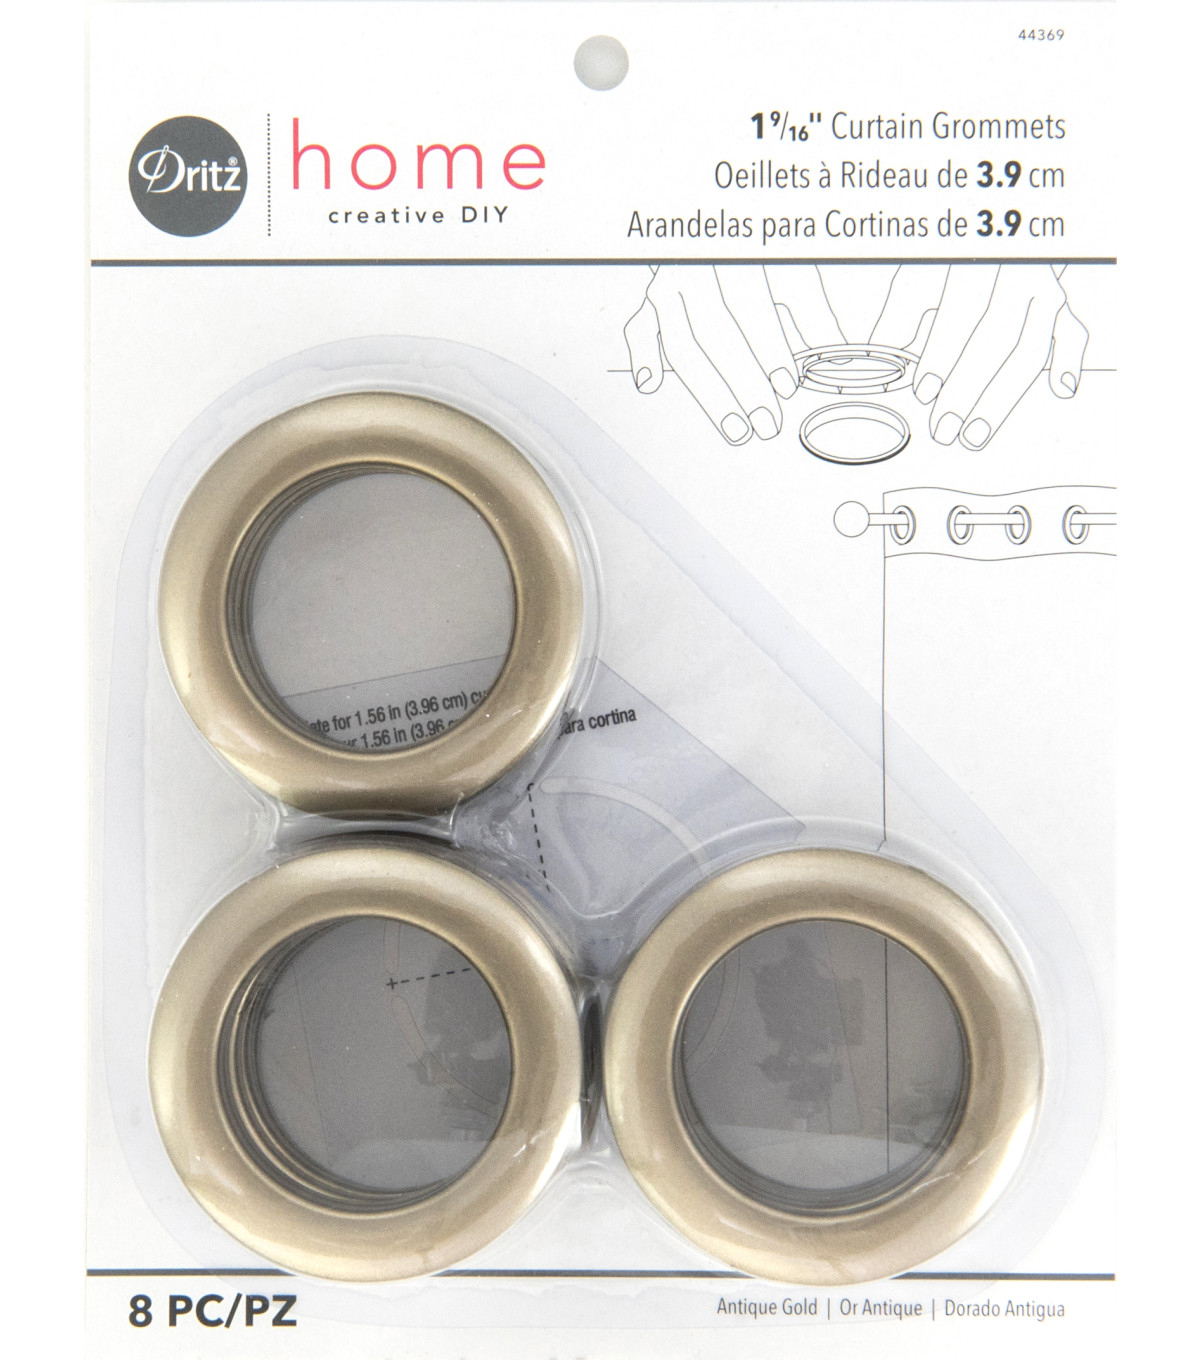 Dritz Home 1.56\u0027\u0027 Curtain Grommets 8pcs Brass, Antique Gold